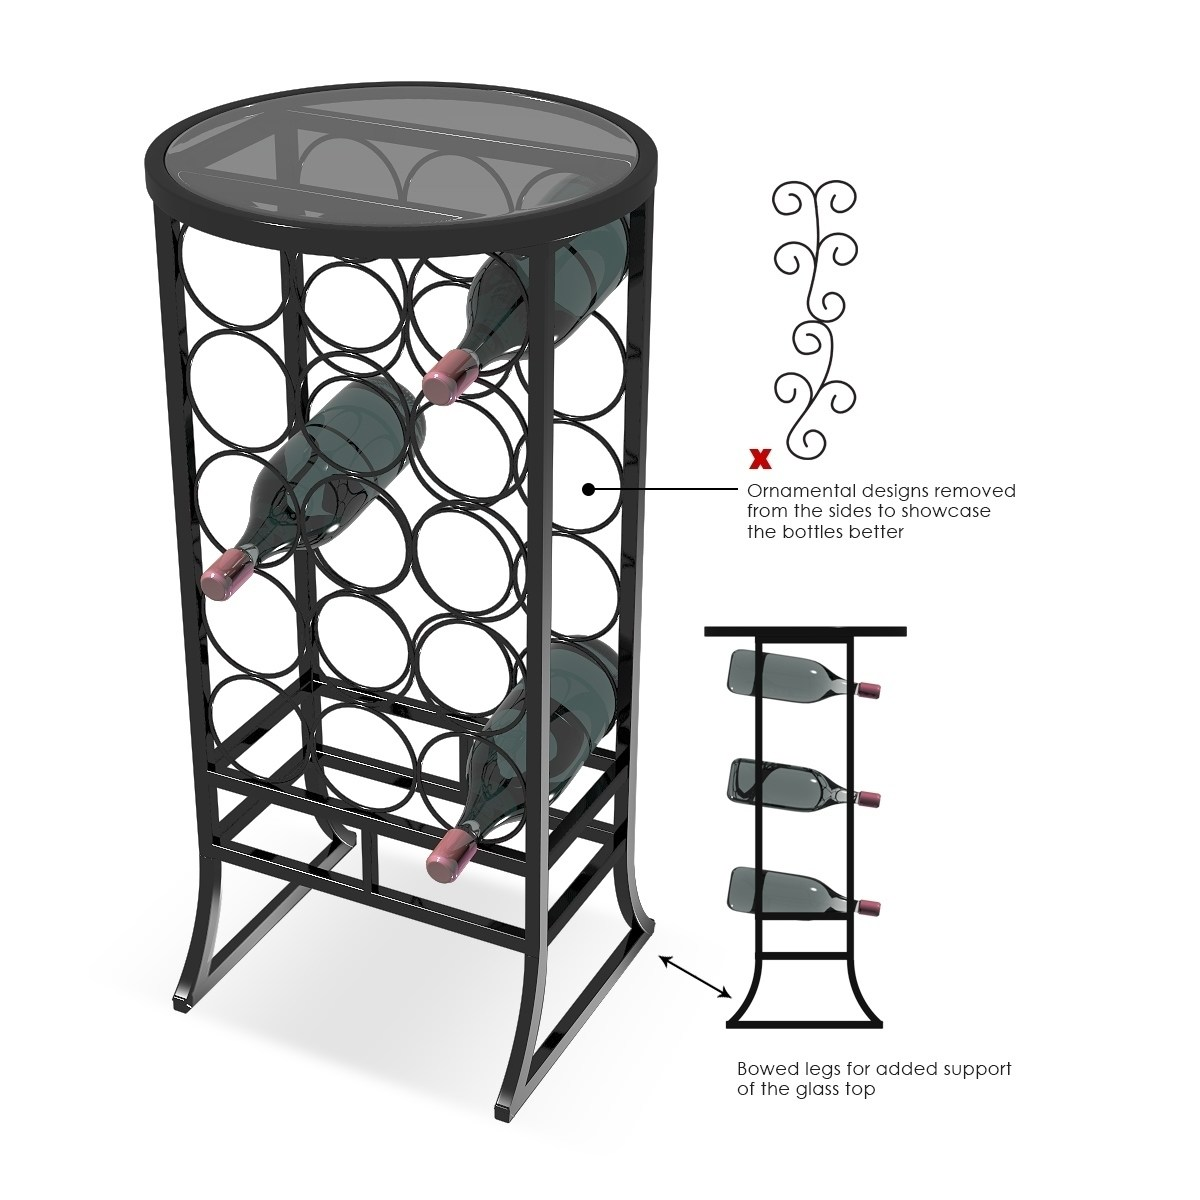 sorbus wine rack stand glass table top 18 bottles wine storage organizer display rack table for dining room kitchen wine cellar bar and more